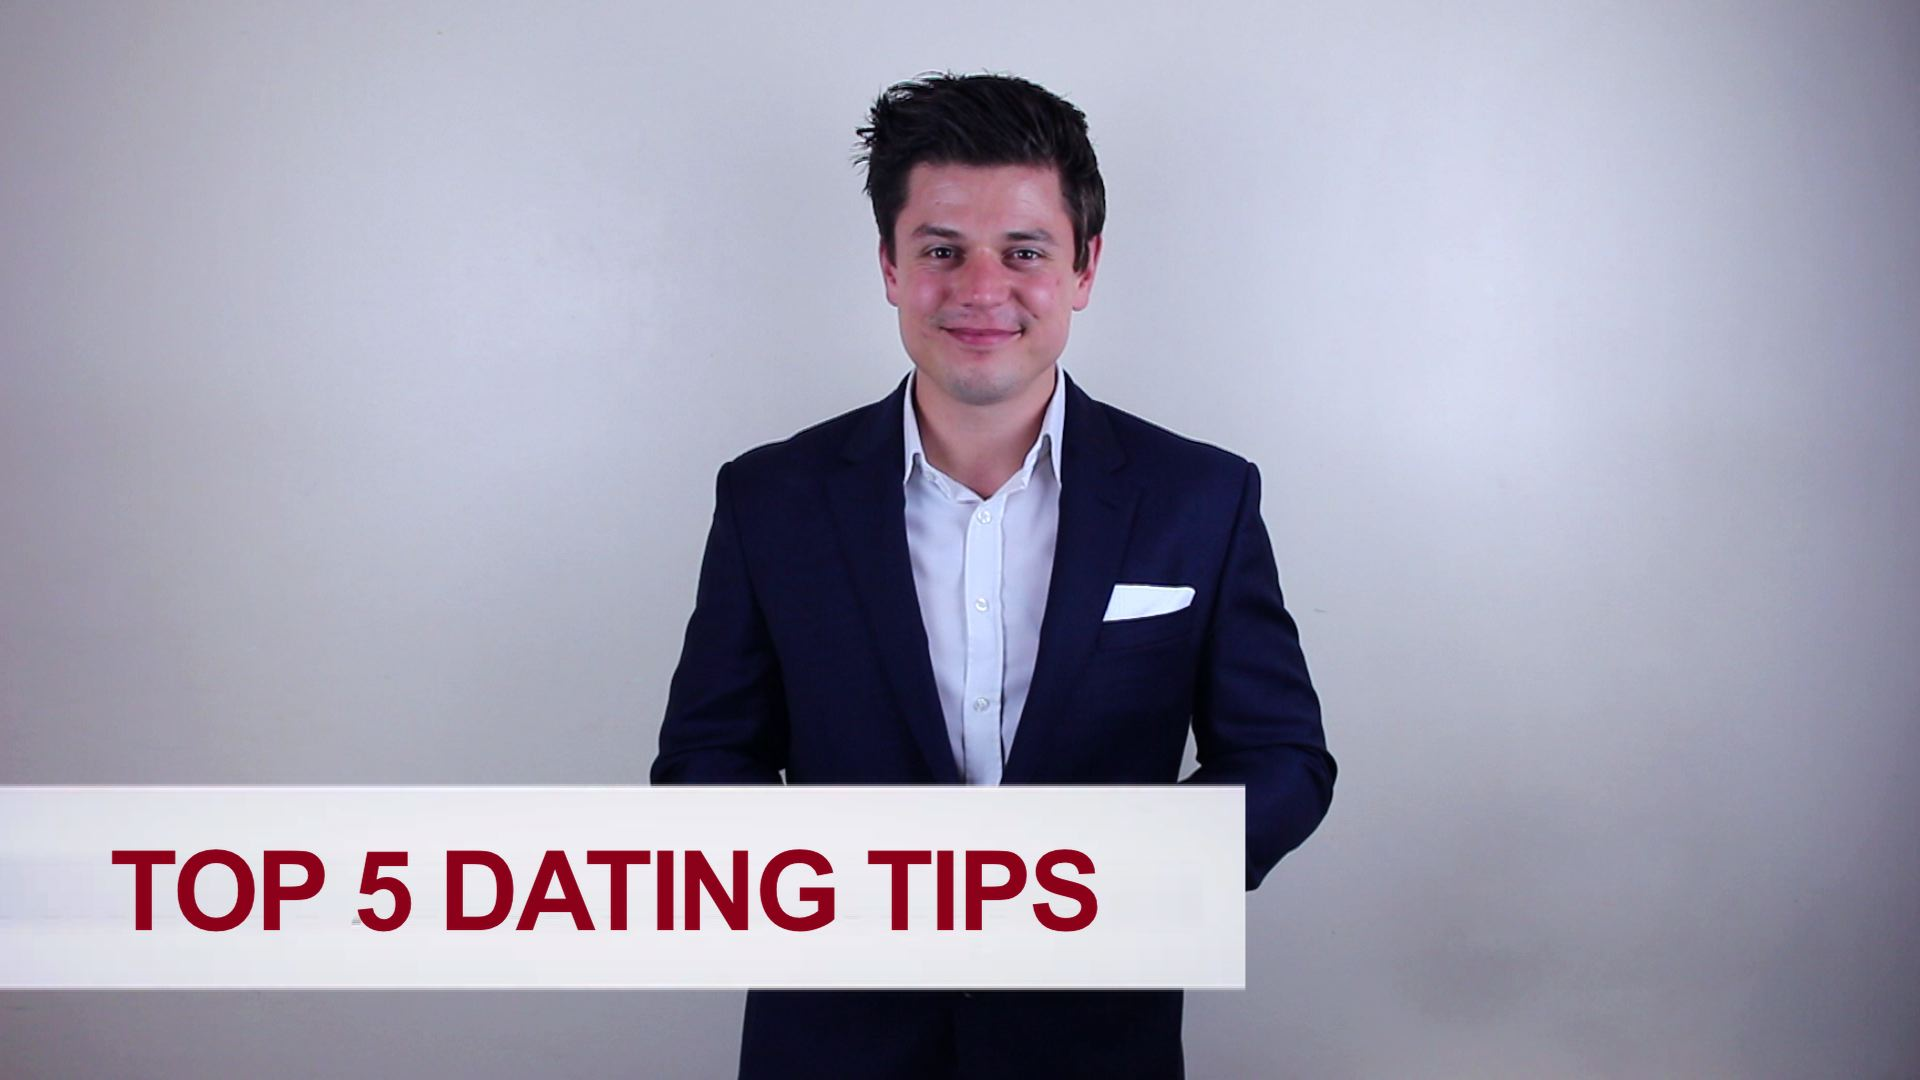 Top 5 Dating Tips